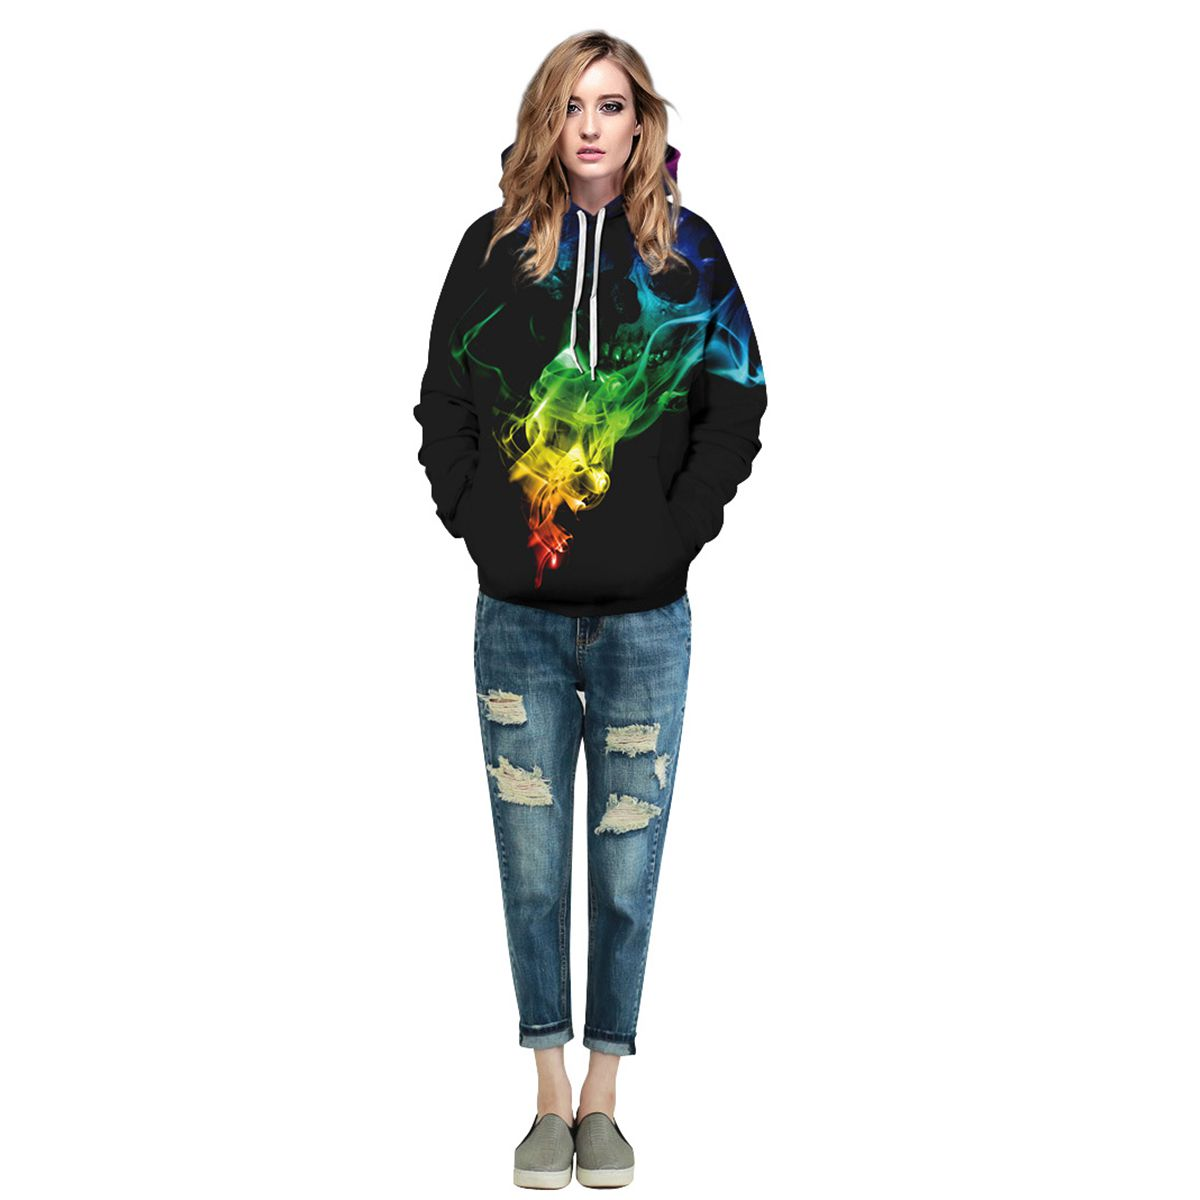 Men/Women New Fashion Unique Designed Colorful Smoke Skulls 3d Print Hoodies Sweatshirts Thin Unisex Hoodie Pullover